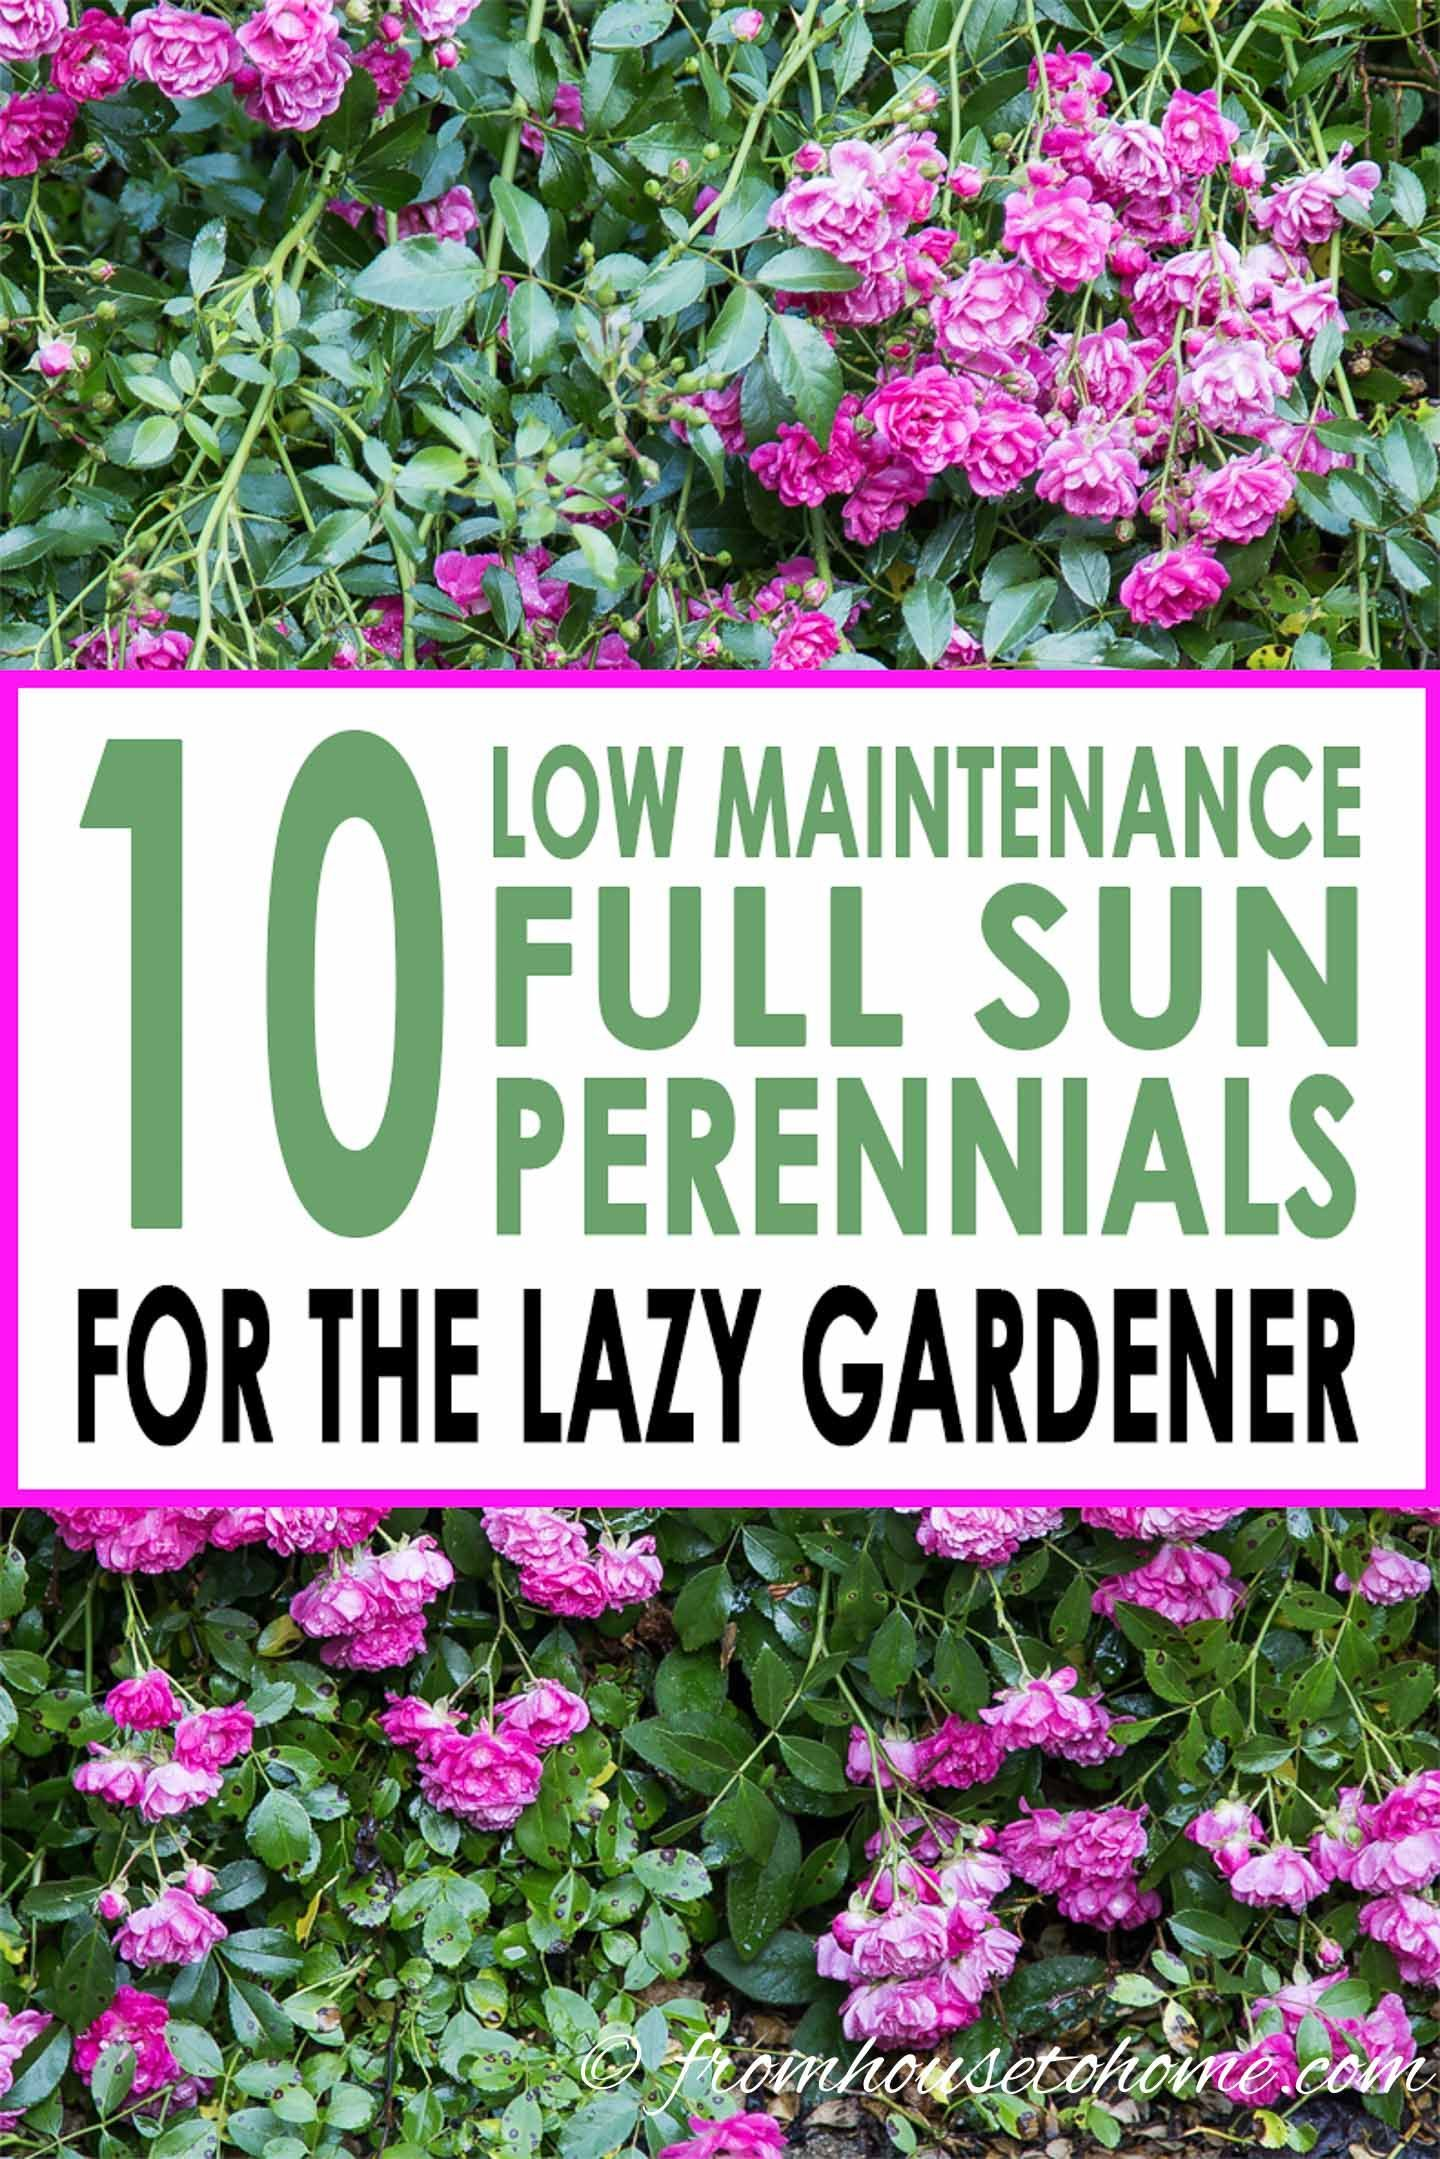 Full Sun Perennials 10 Beautiful Low Maintenance Plants That Thrive In The Sun is part of Full sun perennials, Herb garden design, Sun perennials, Full sun garden, Low maintenance plants, Easy plants to grow - Looking for low maintenance plants with beautiful flowers that will grow well in full sun (even in the South!)  These full sun perennials are perfect!